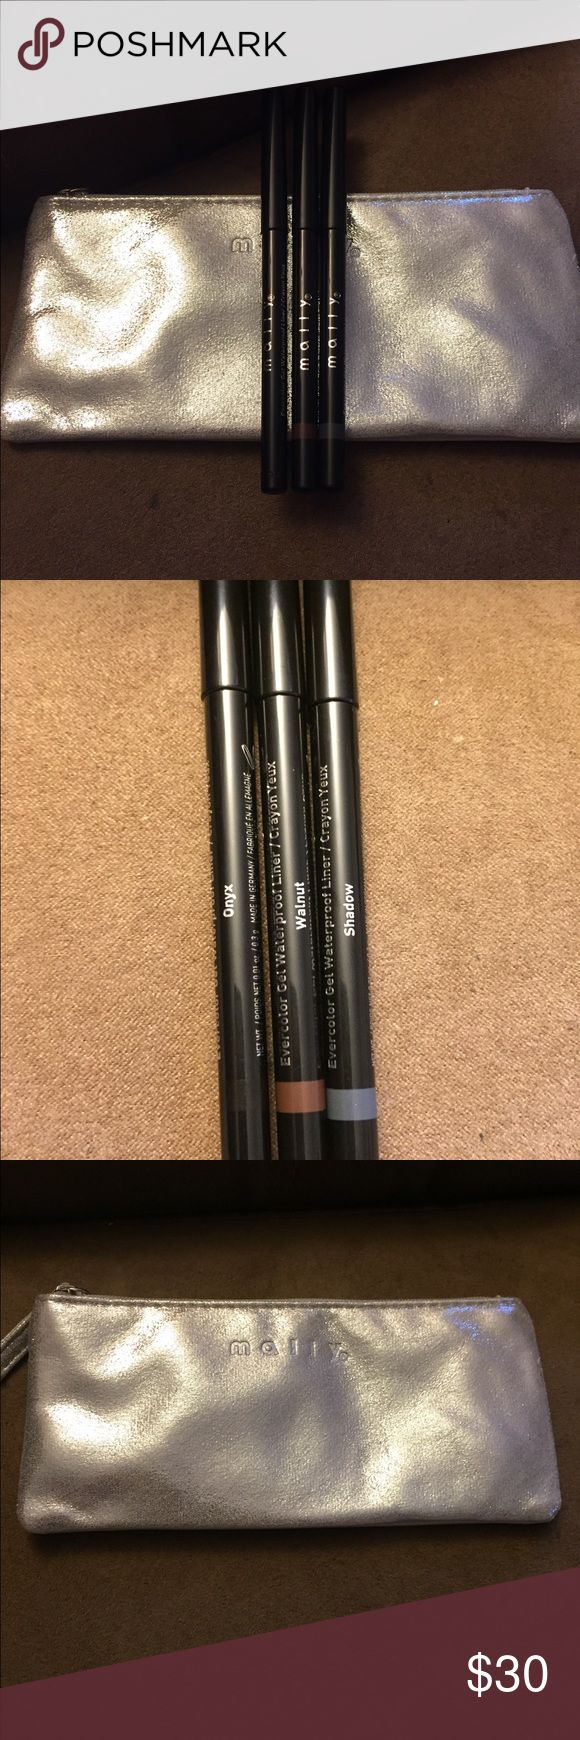 Mally Cosmetics eyeliner kit with bag Brand new! Mally Cosmetics set of 3 Evercolor gel waterproof liners. Full sizes! Onyx, Walnut and Shadow. Comes with small bag. mally Makeup Eyeliner